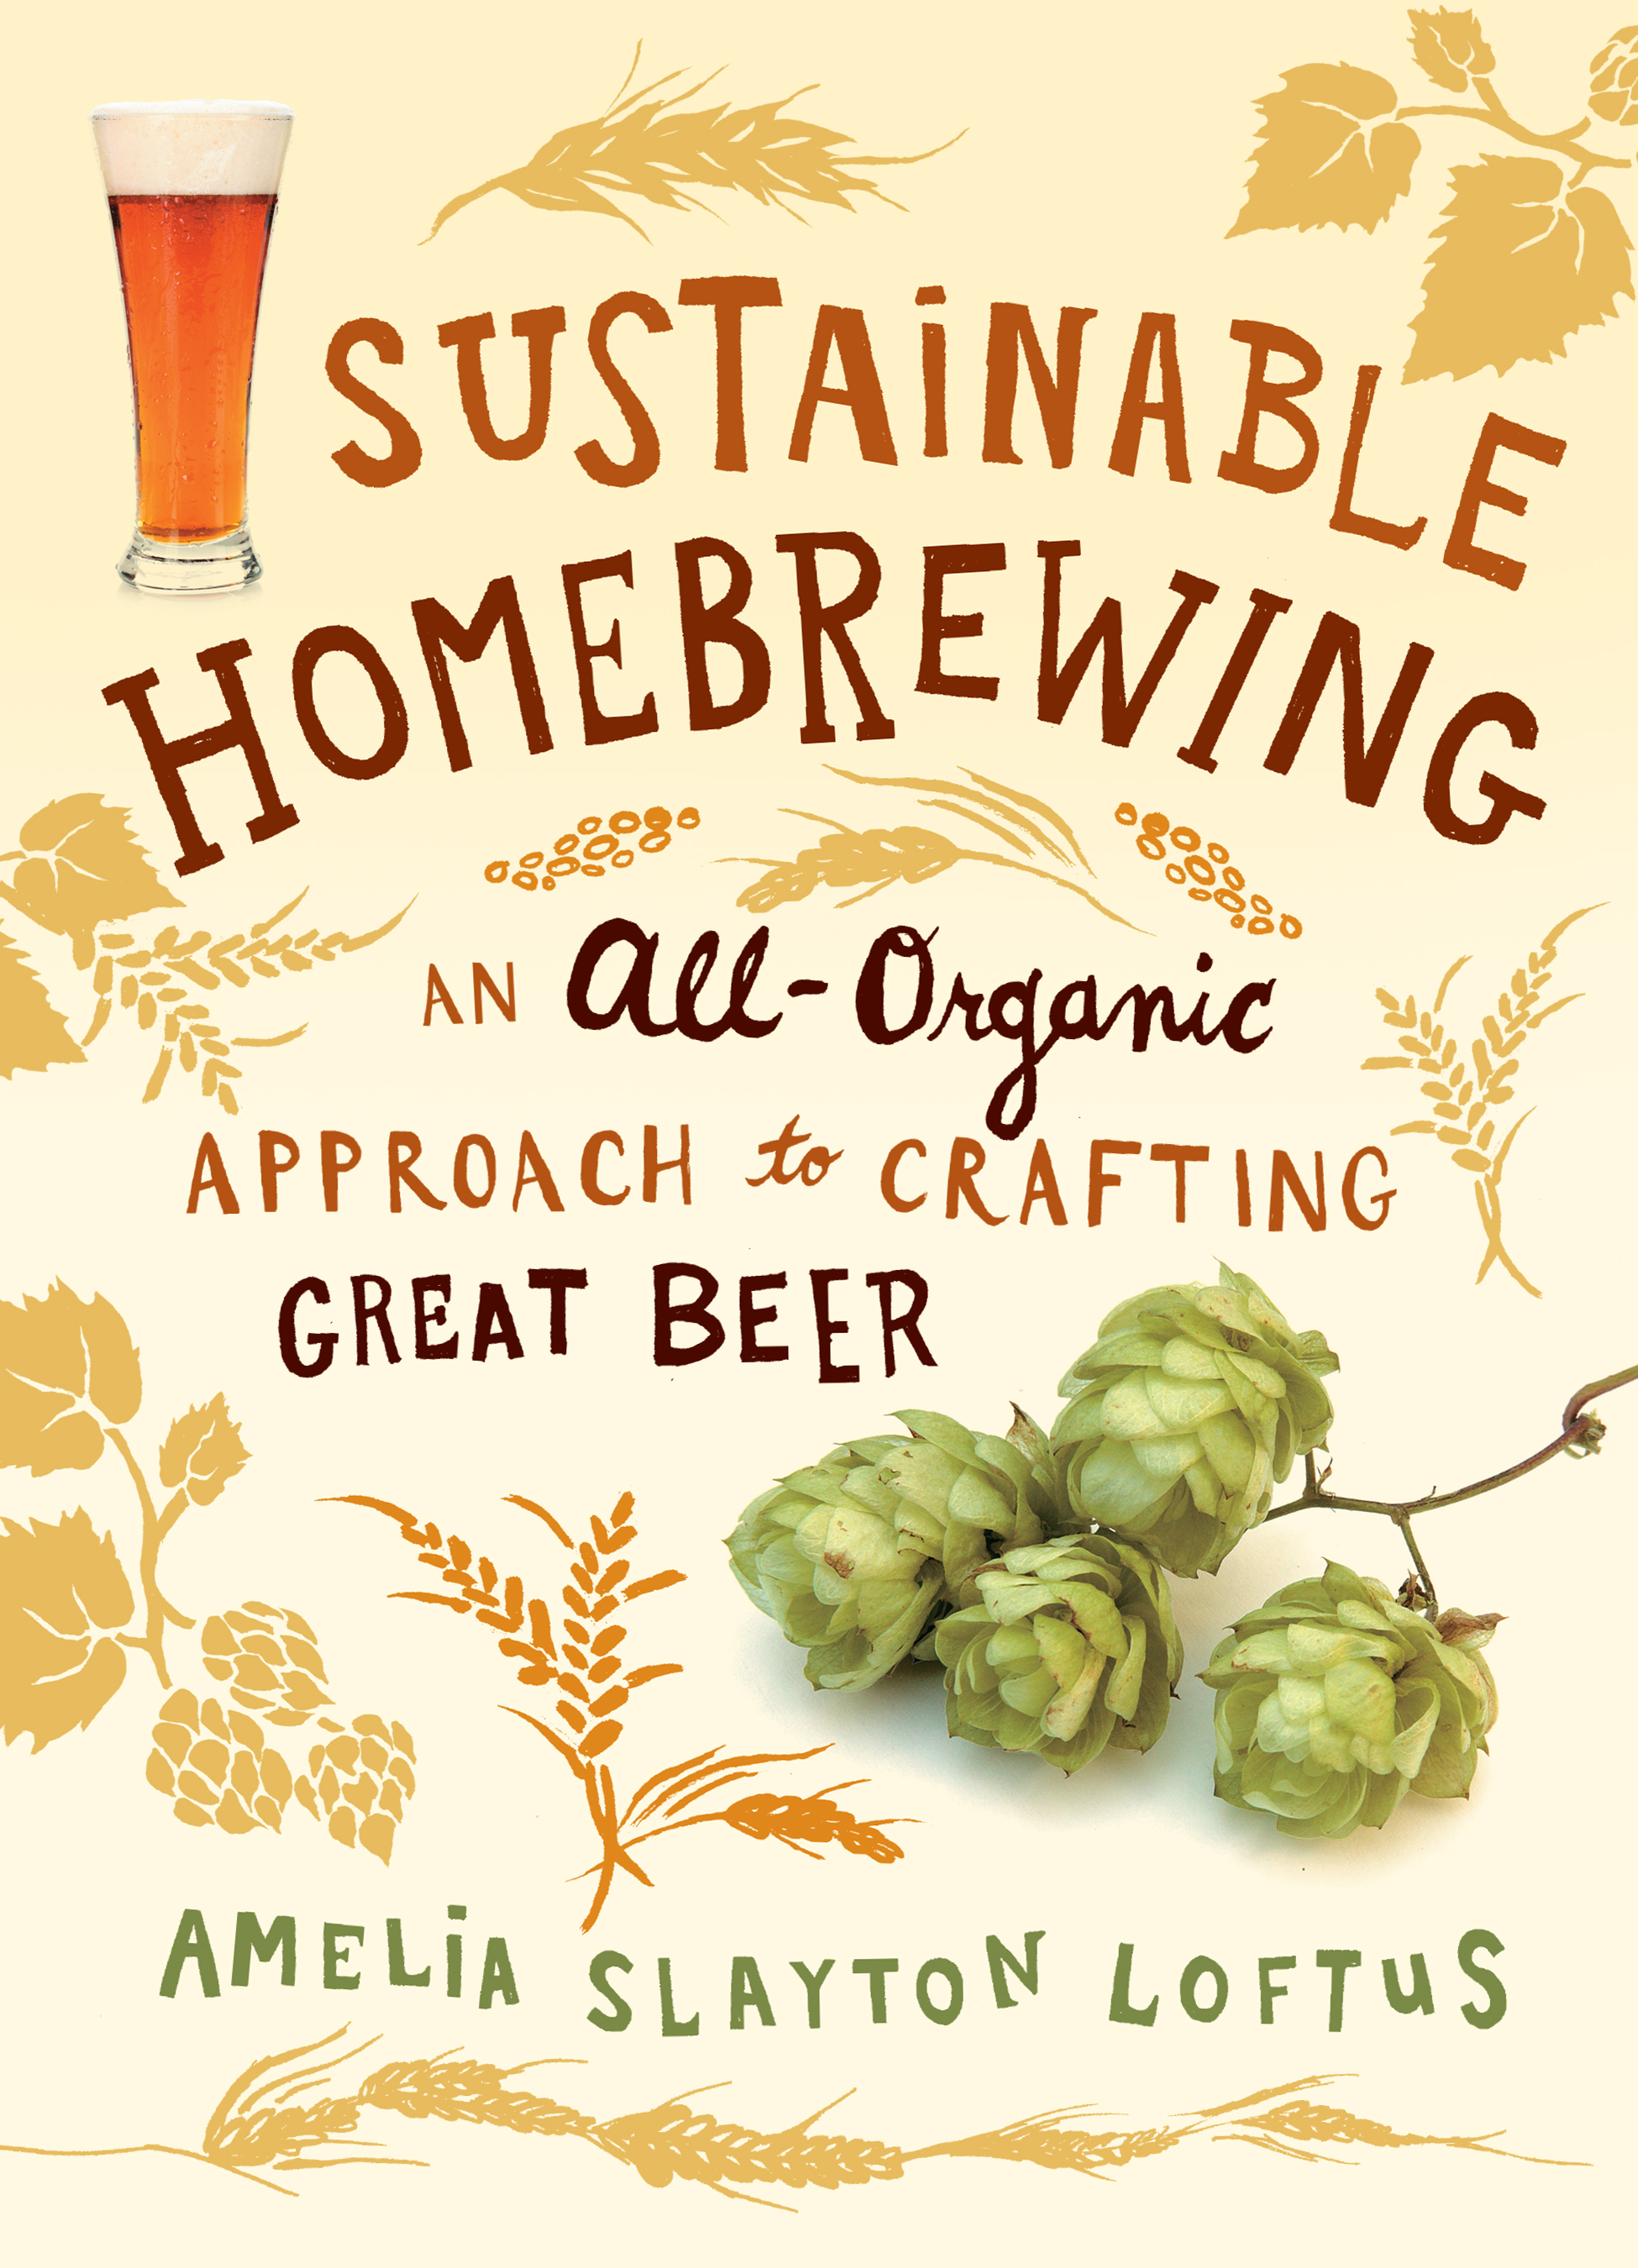 Sustainable Homebrewing An All-Organic Approach to Crafting Great Beer